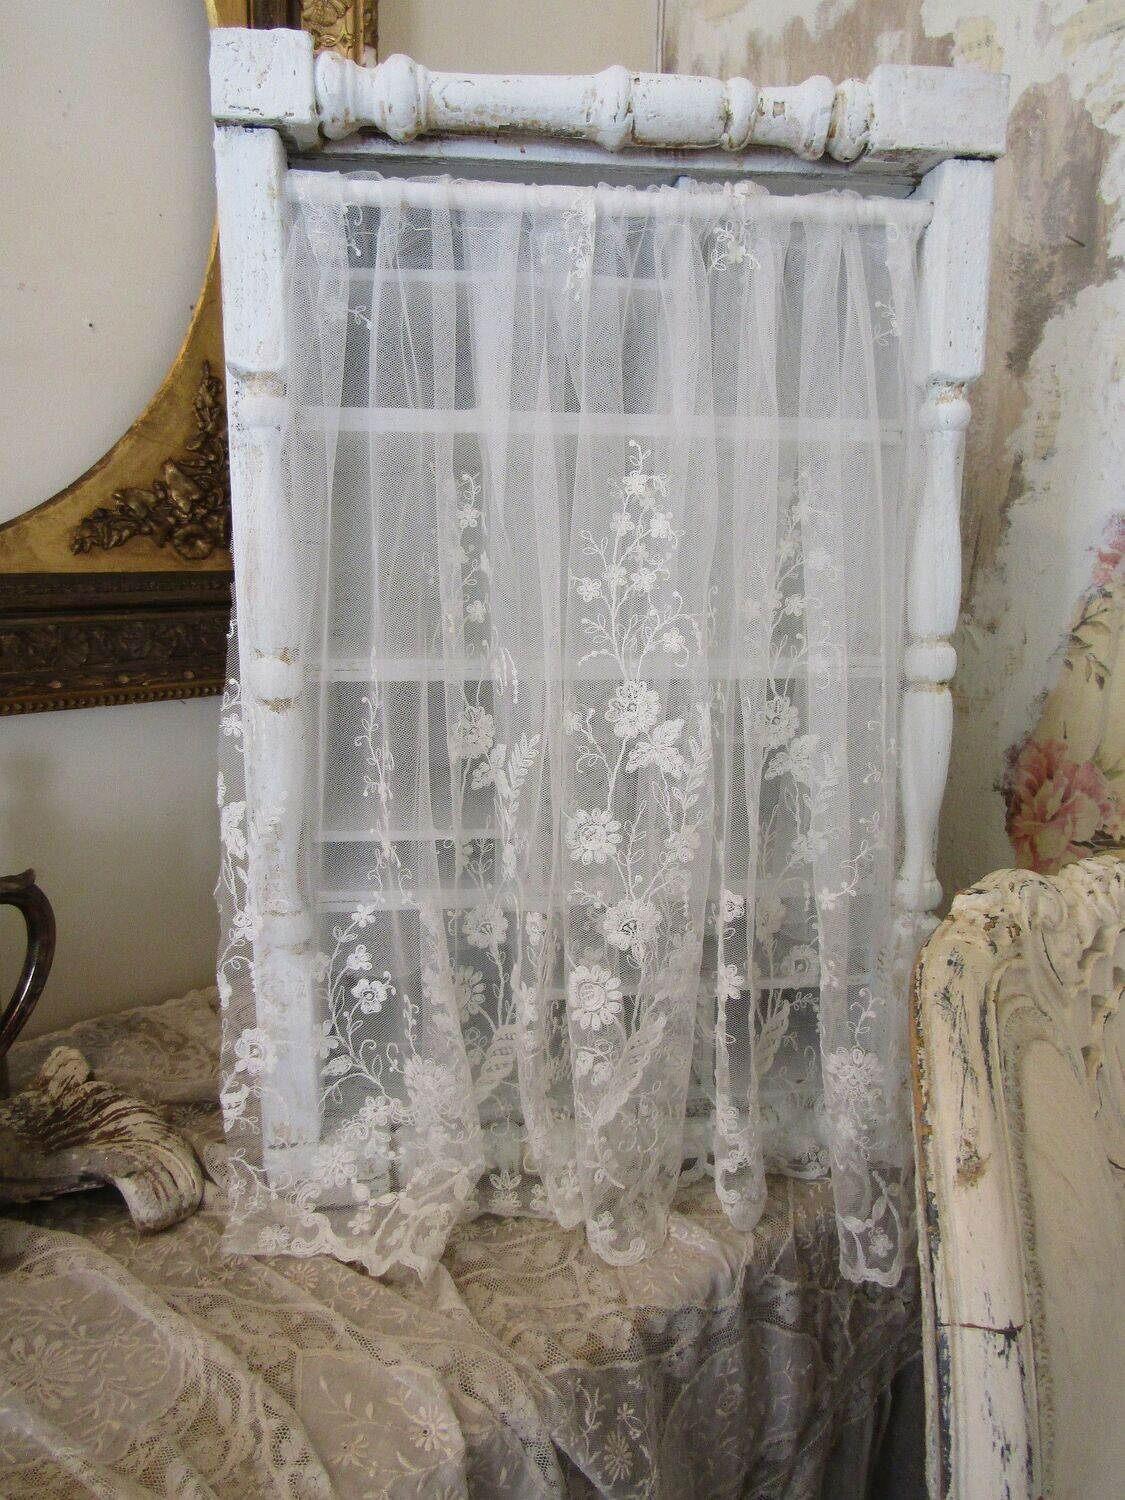 White wood open storage cabinet cubby, antique salvage with embroidered fine lace curtain